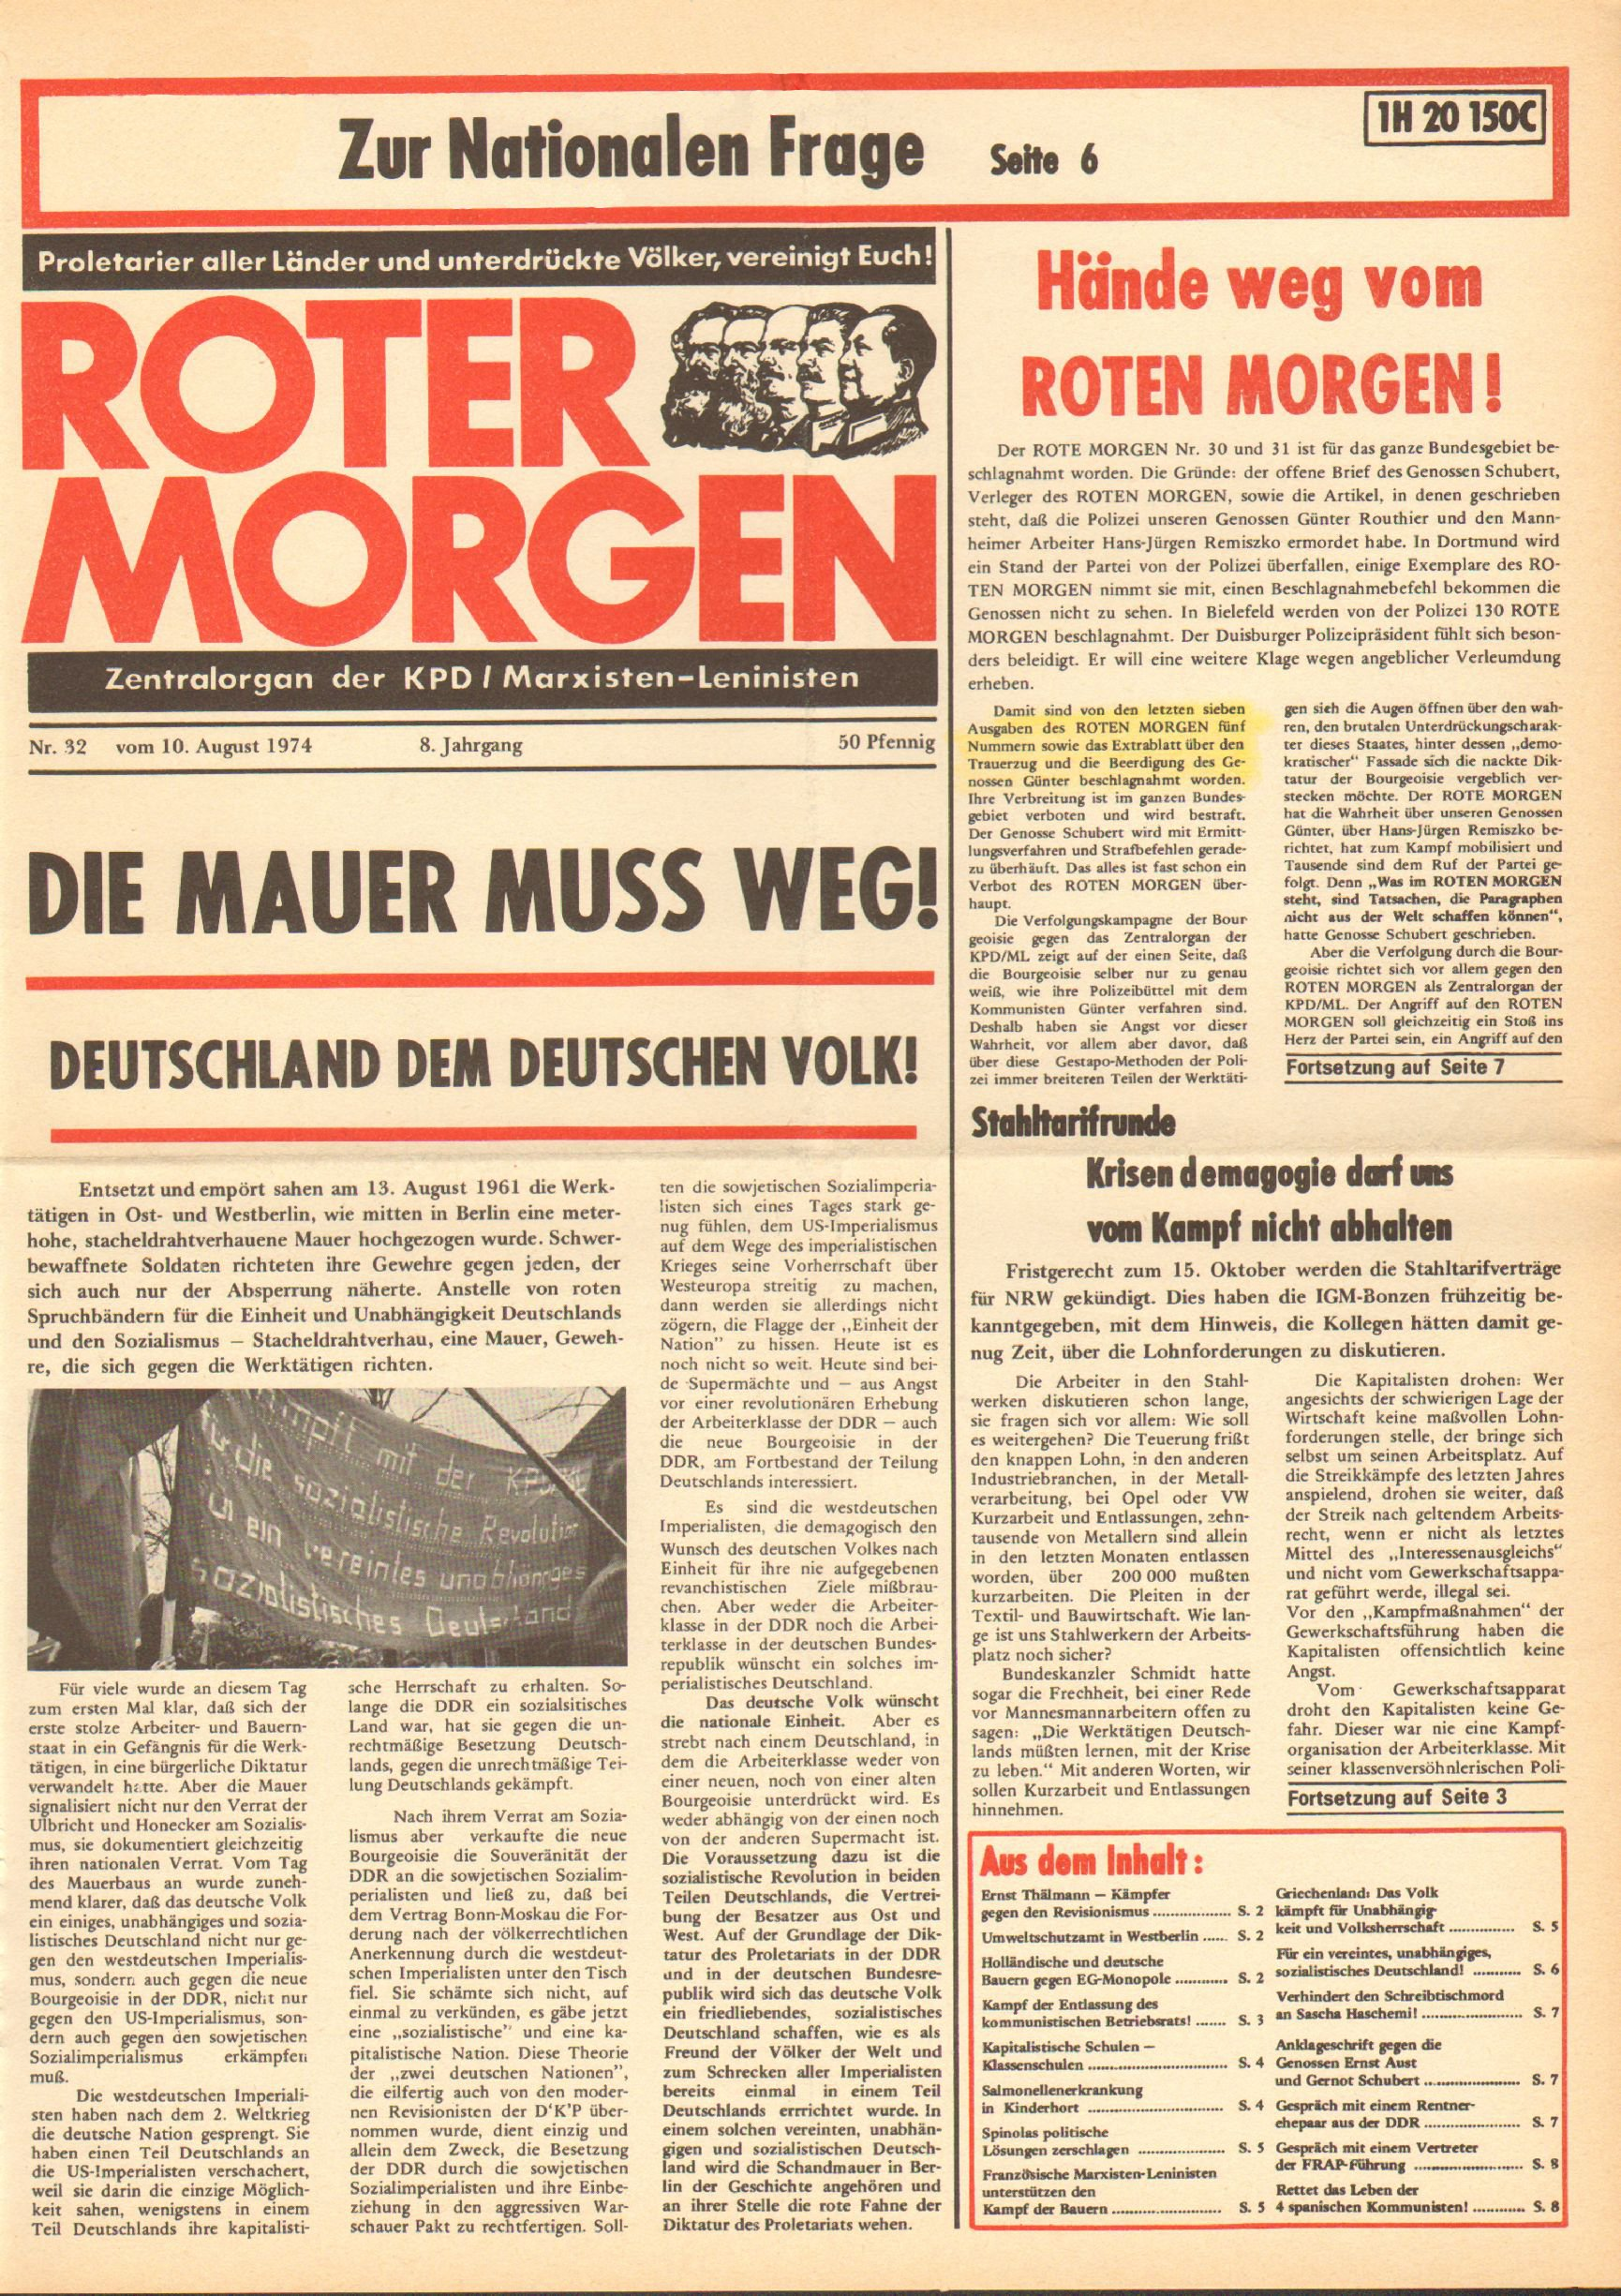 Roter Morgen, 8. Jg., 10. August 1974, Nr. 32, Seite 1